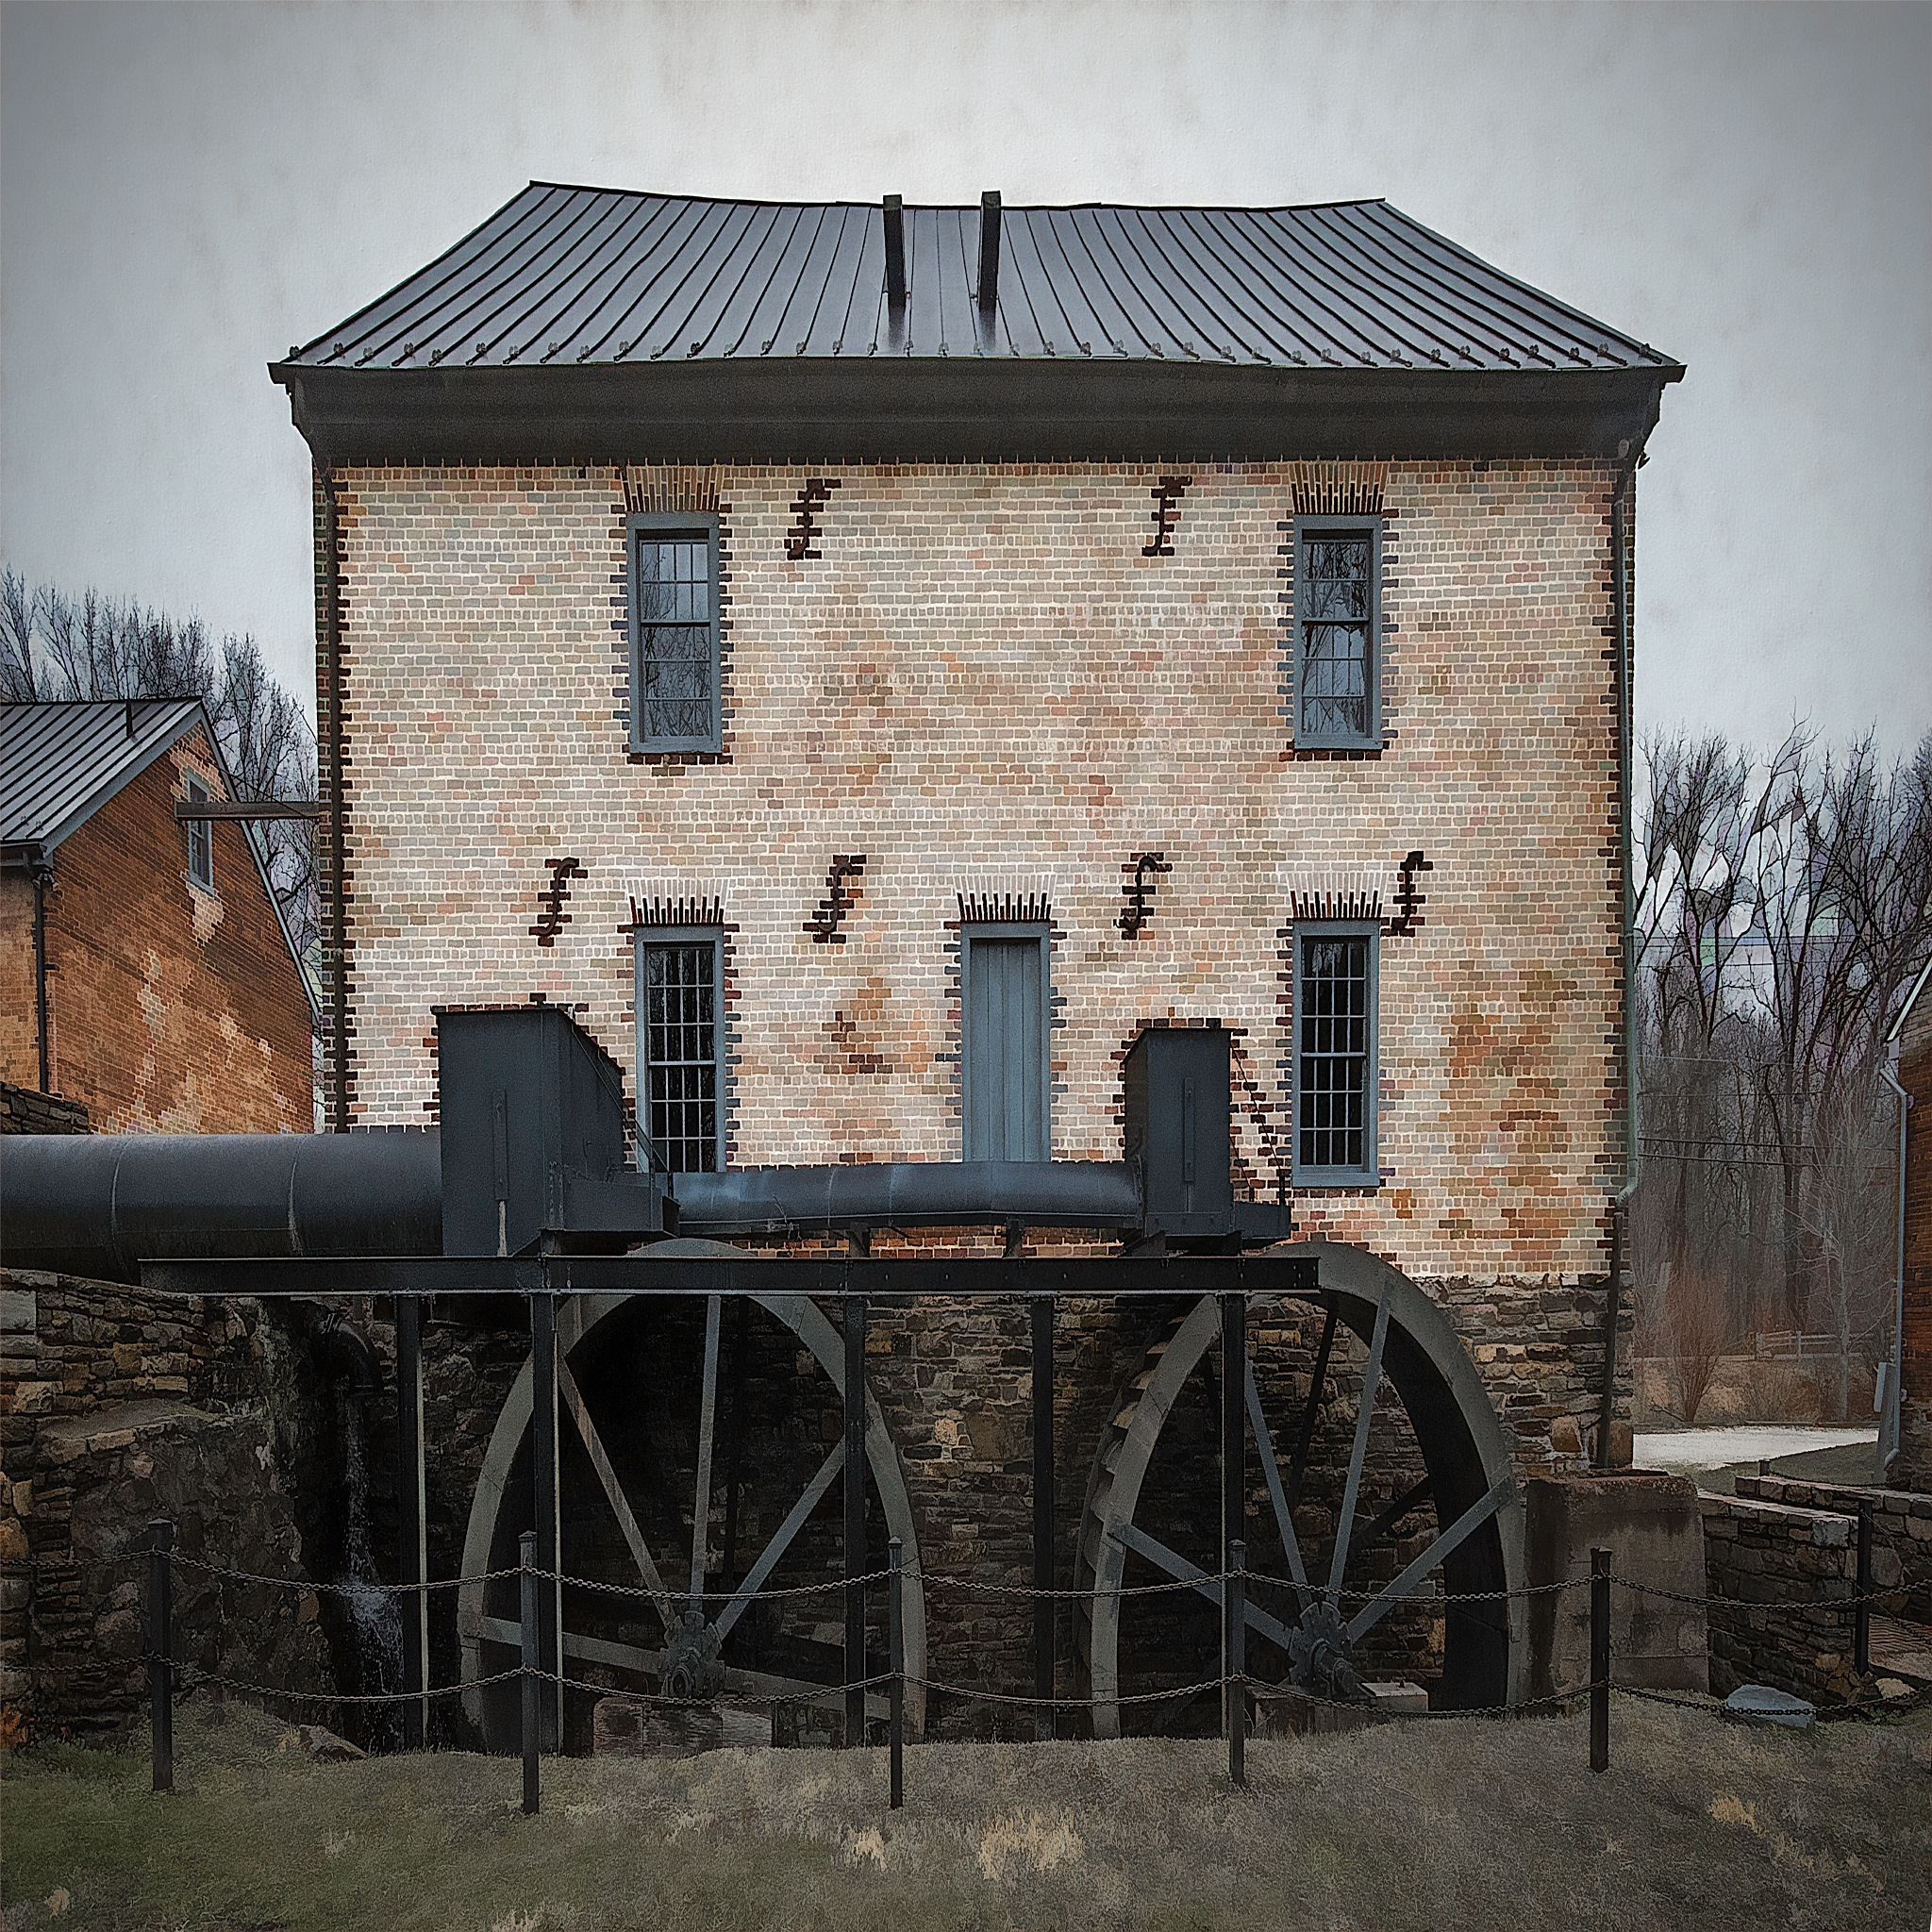 Aldie Mill 3 by JohnEllingson